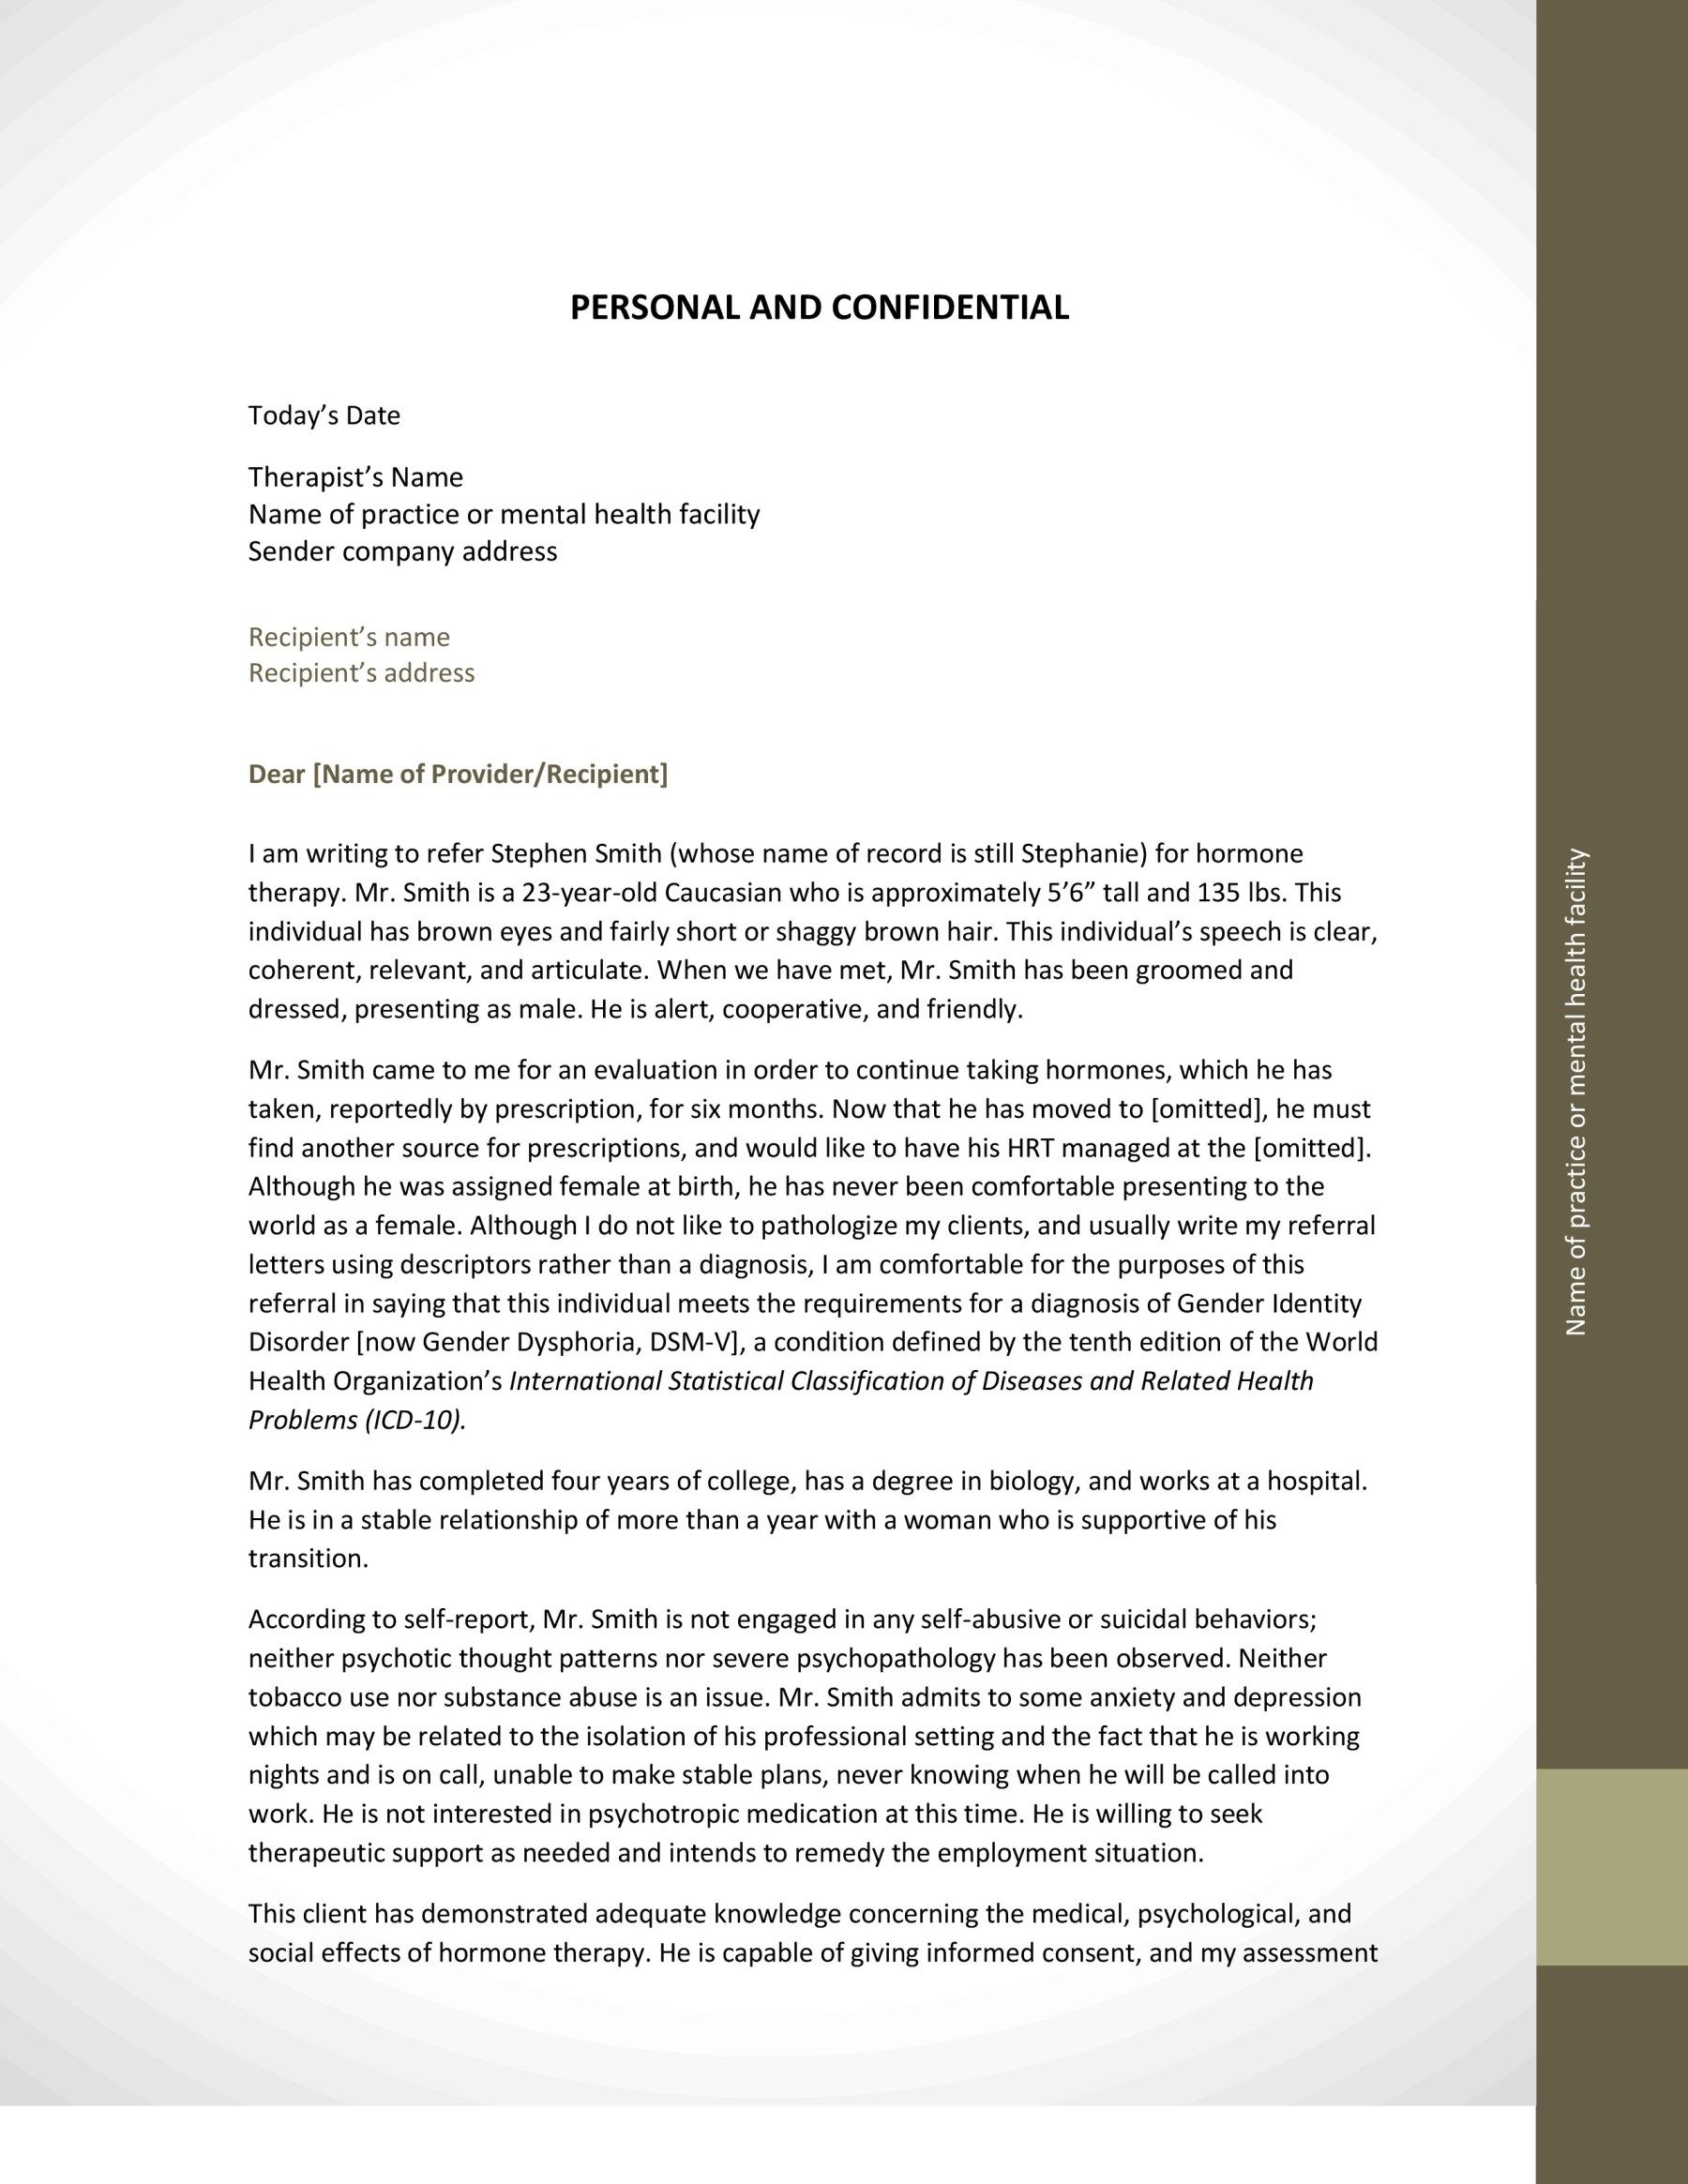 Company Referral Letter Fascinating Hrt Referral Letter Examplepage0  Mine  Pinterest  Referral .